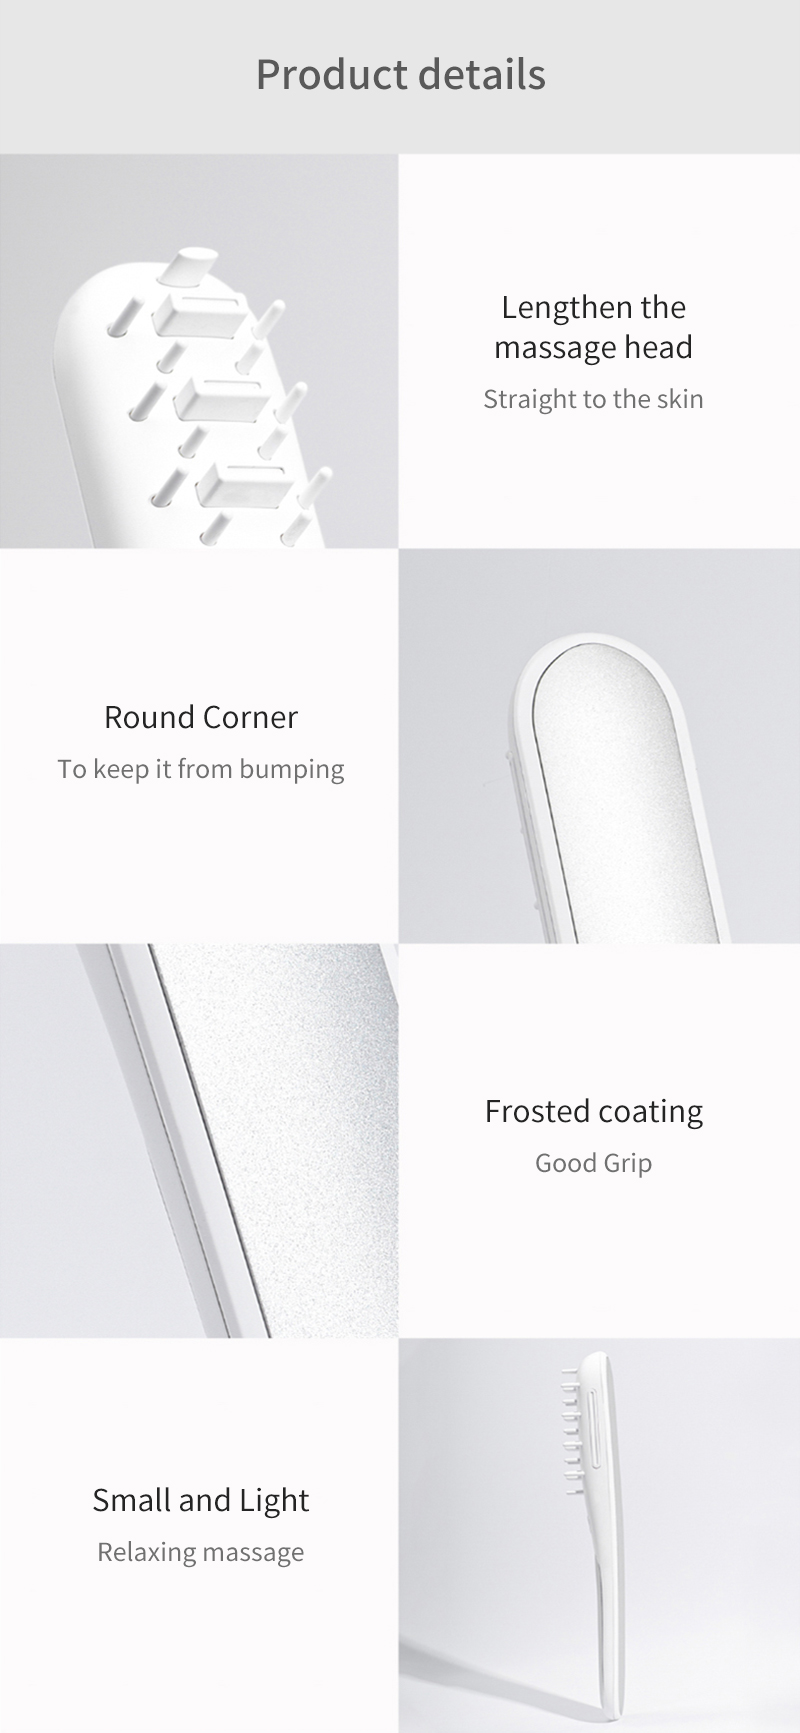 CARN Pets Smart Ozone Sterilization Comb Electric Combs From Xiaomi Youpin Care Pet Health With TYPE-C Deodorant Efficient Sterilization